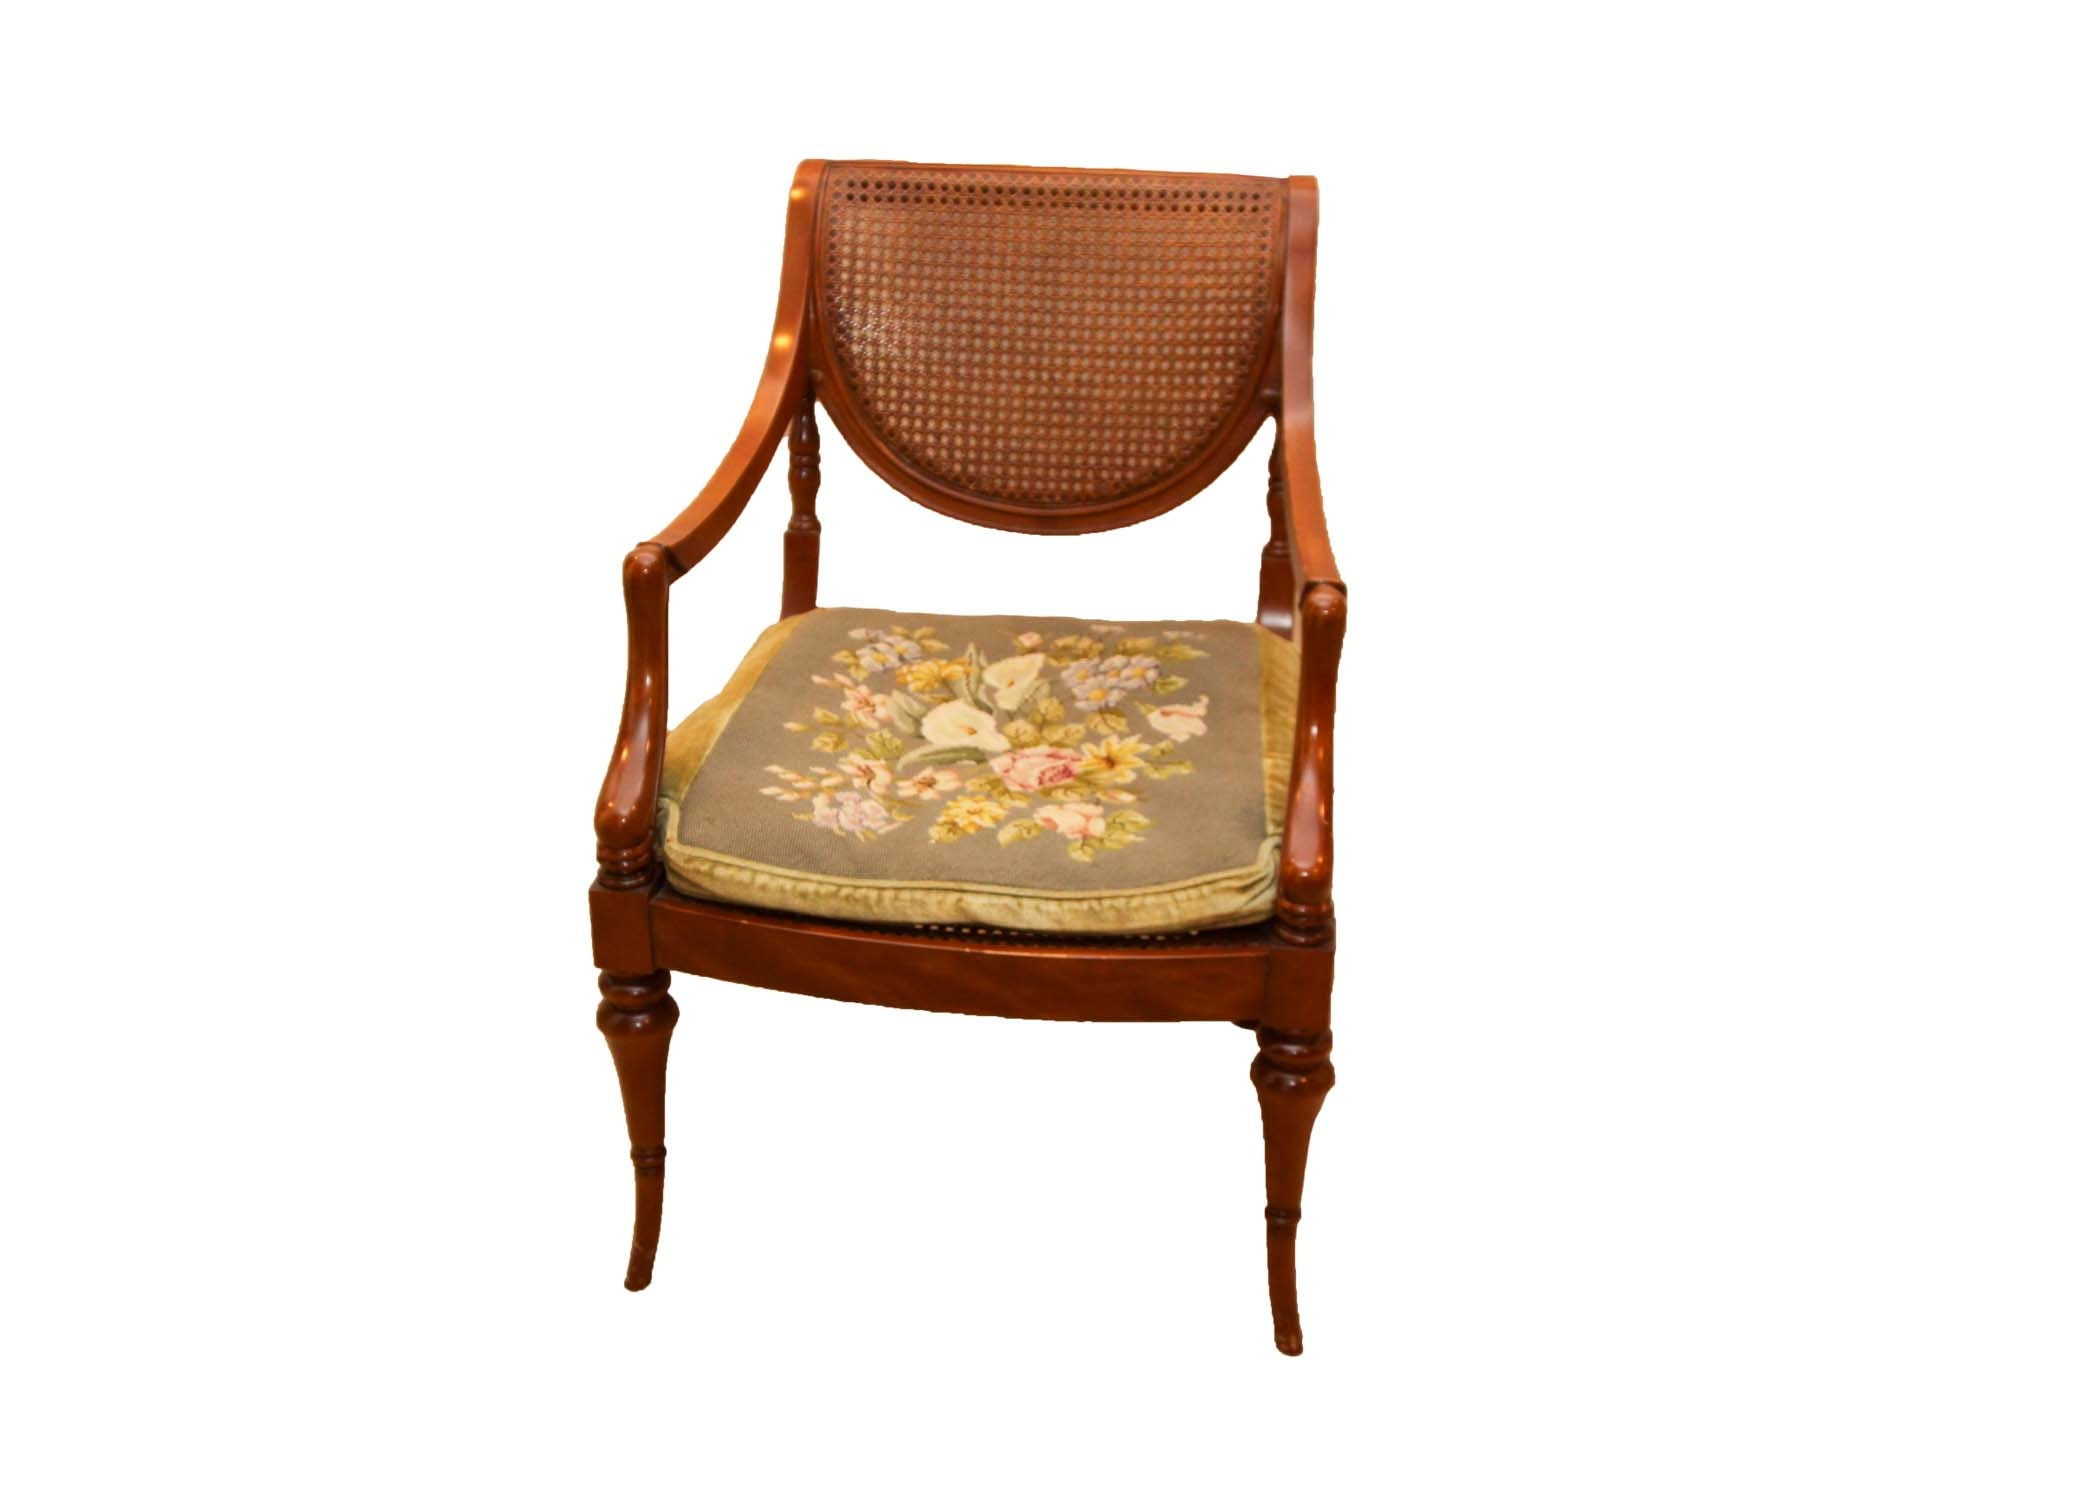 An Empire Style Chair with Rattan Back and Seat